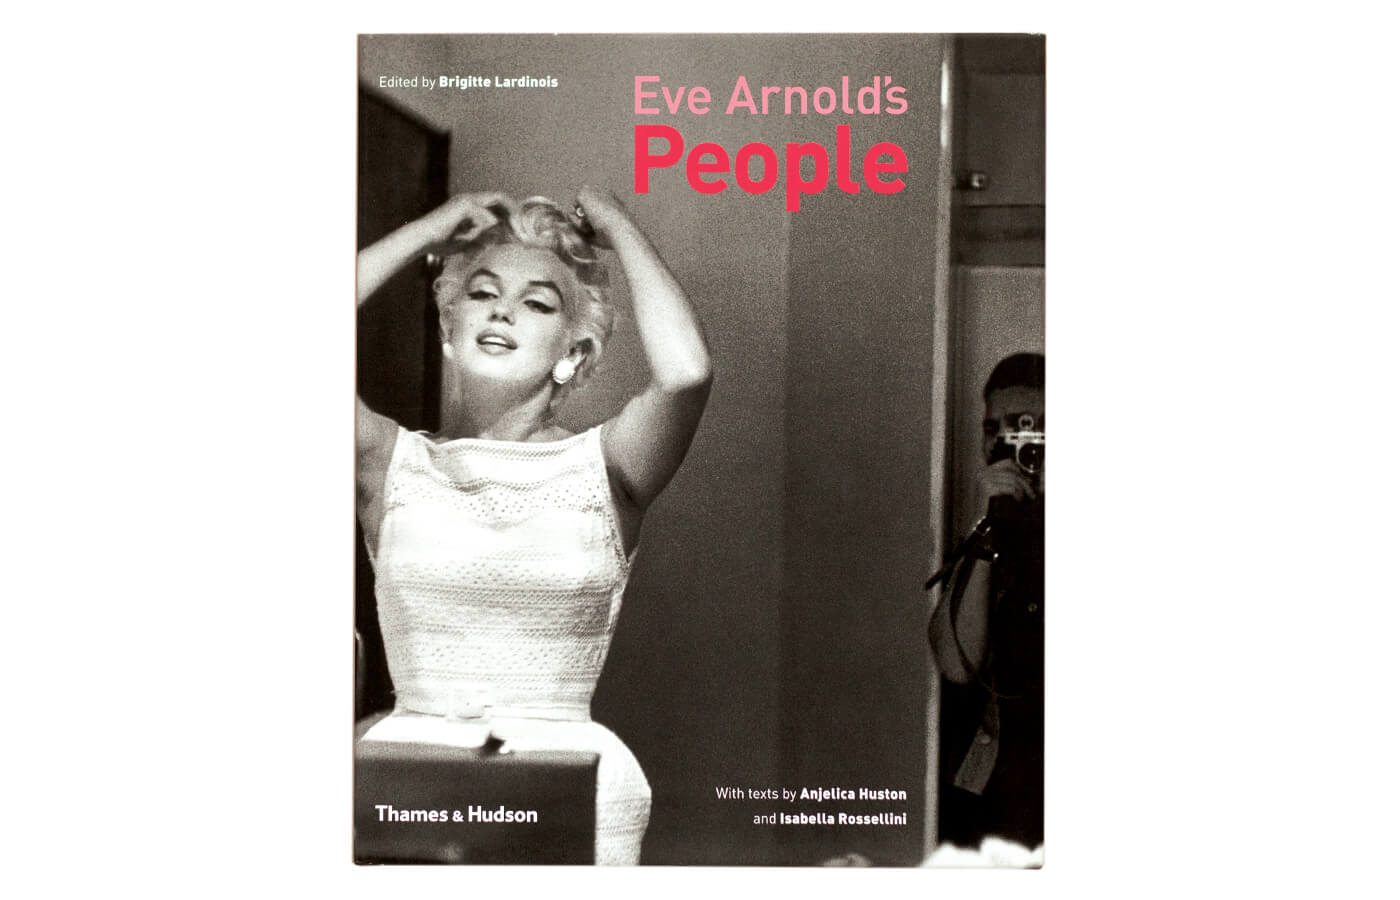 Eve Arnold's People